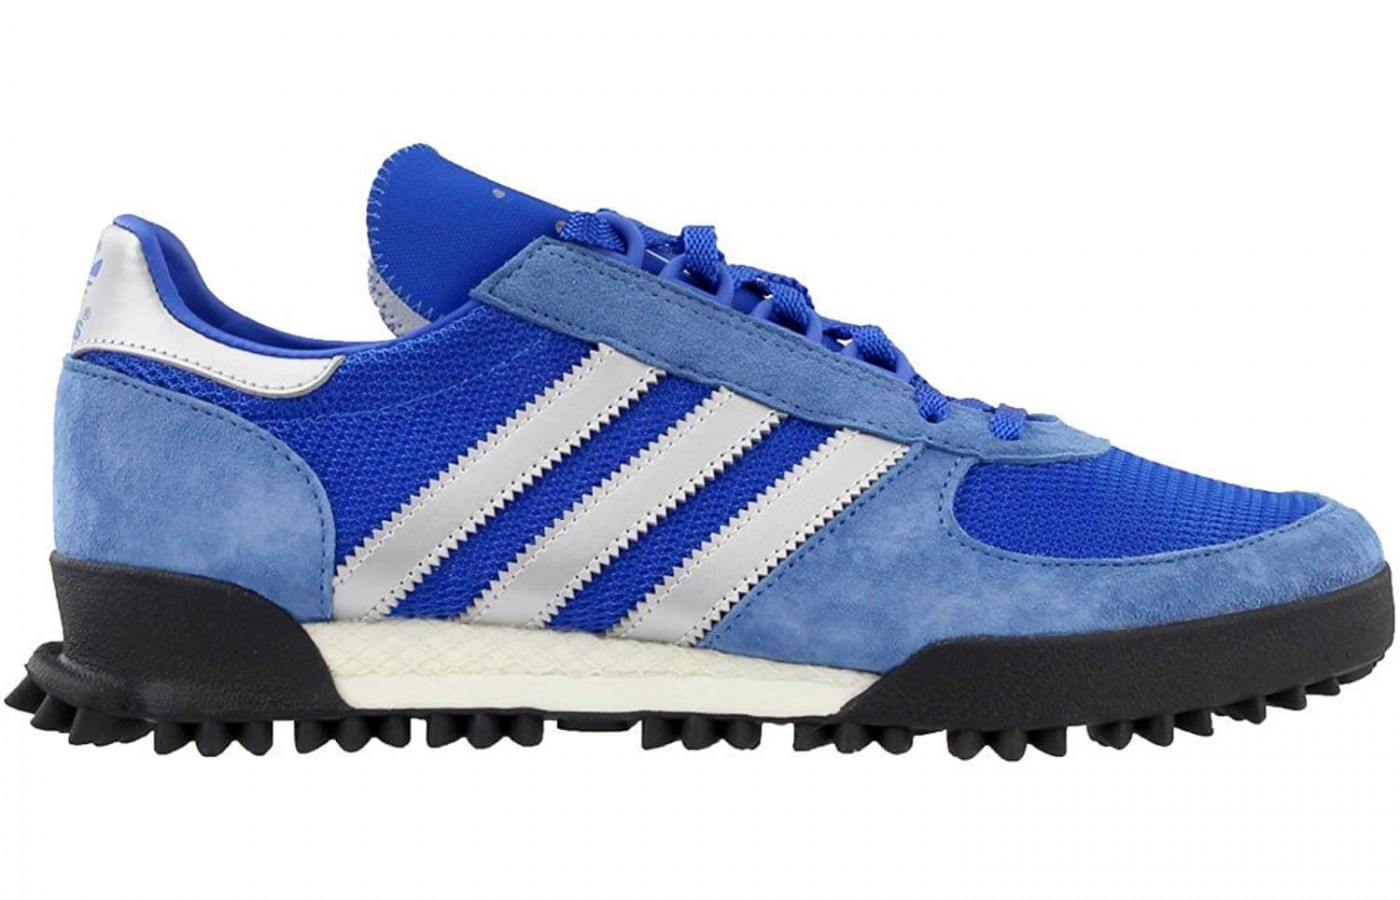 9e87ce75c72 ... The Marathon TR was first released in 1979  The Adidas Marathon TR  features a ...